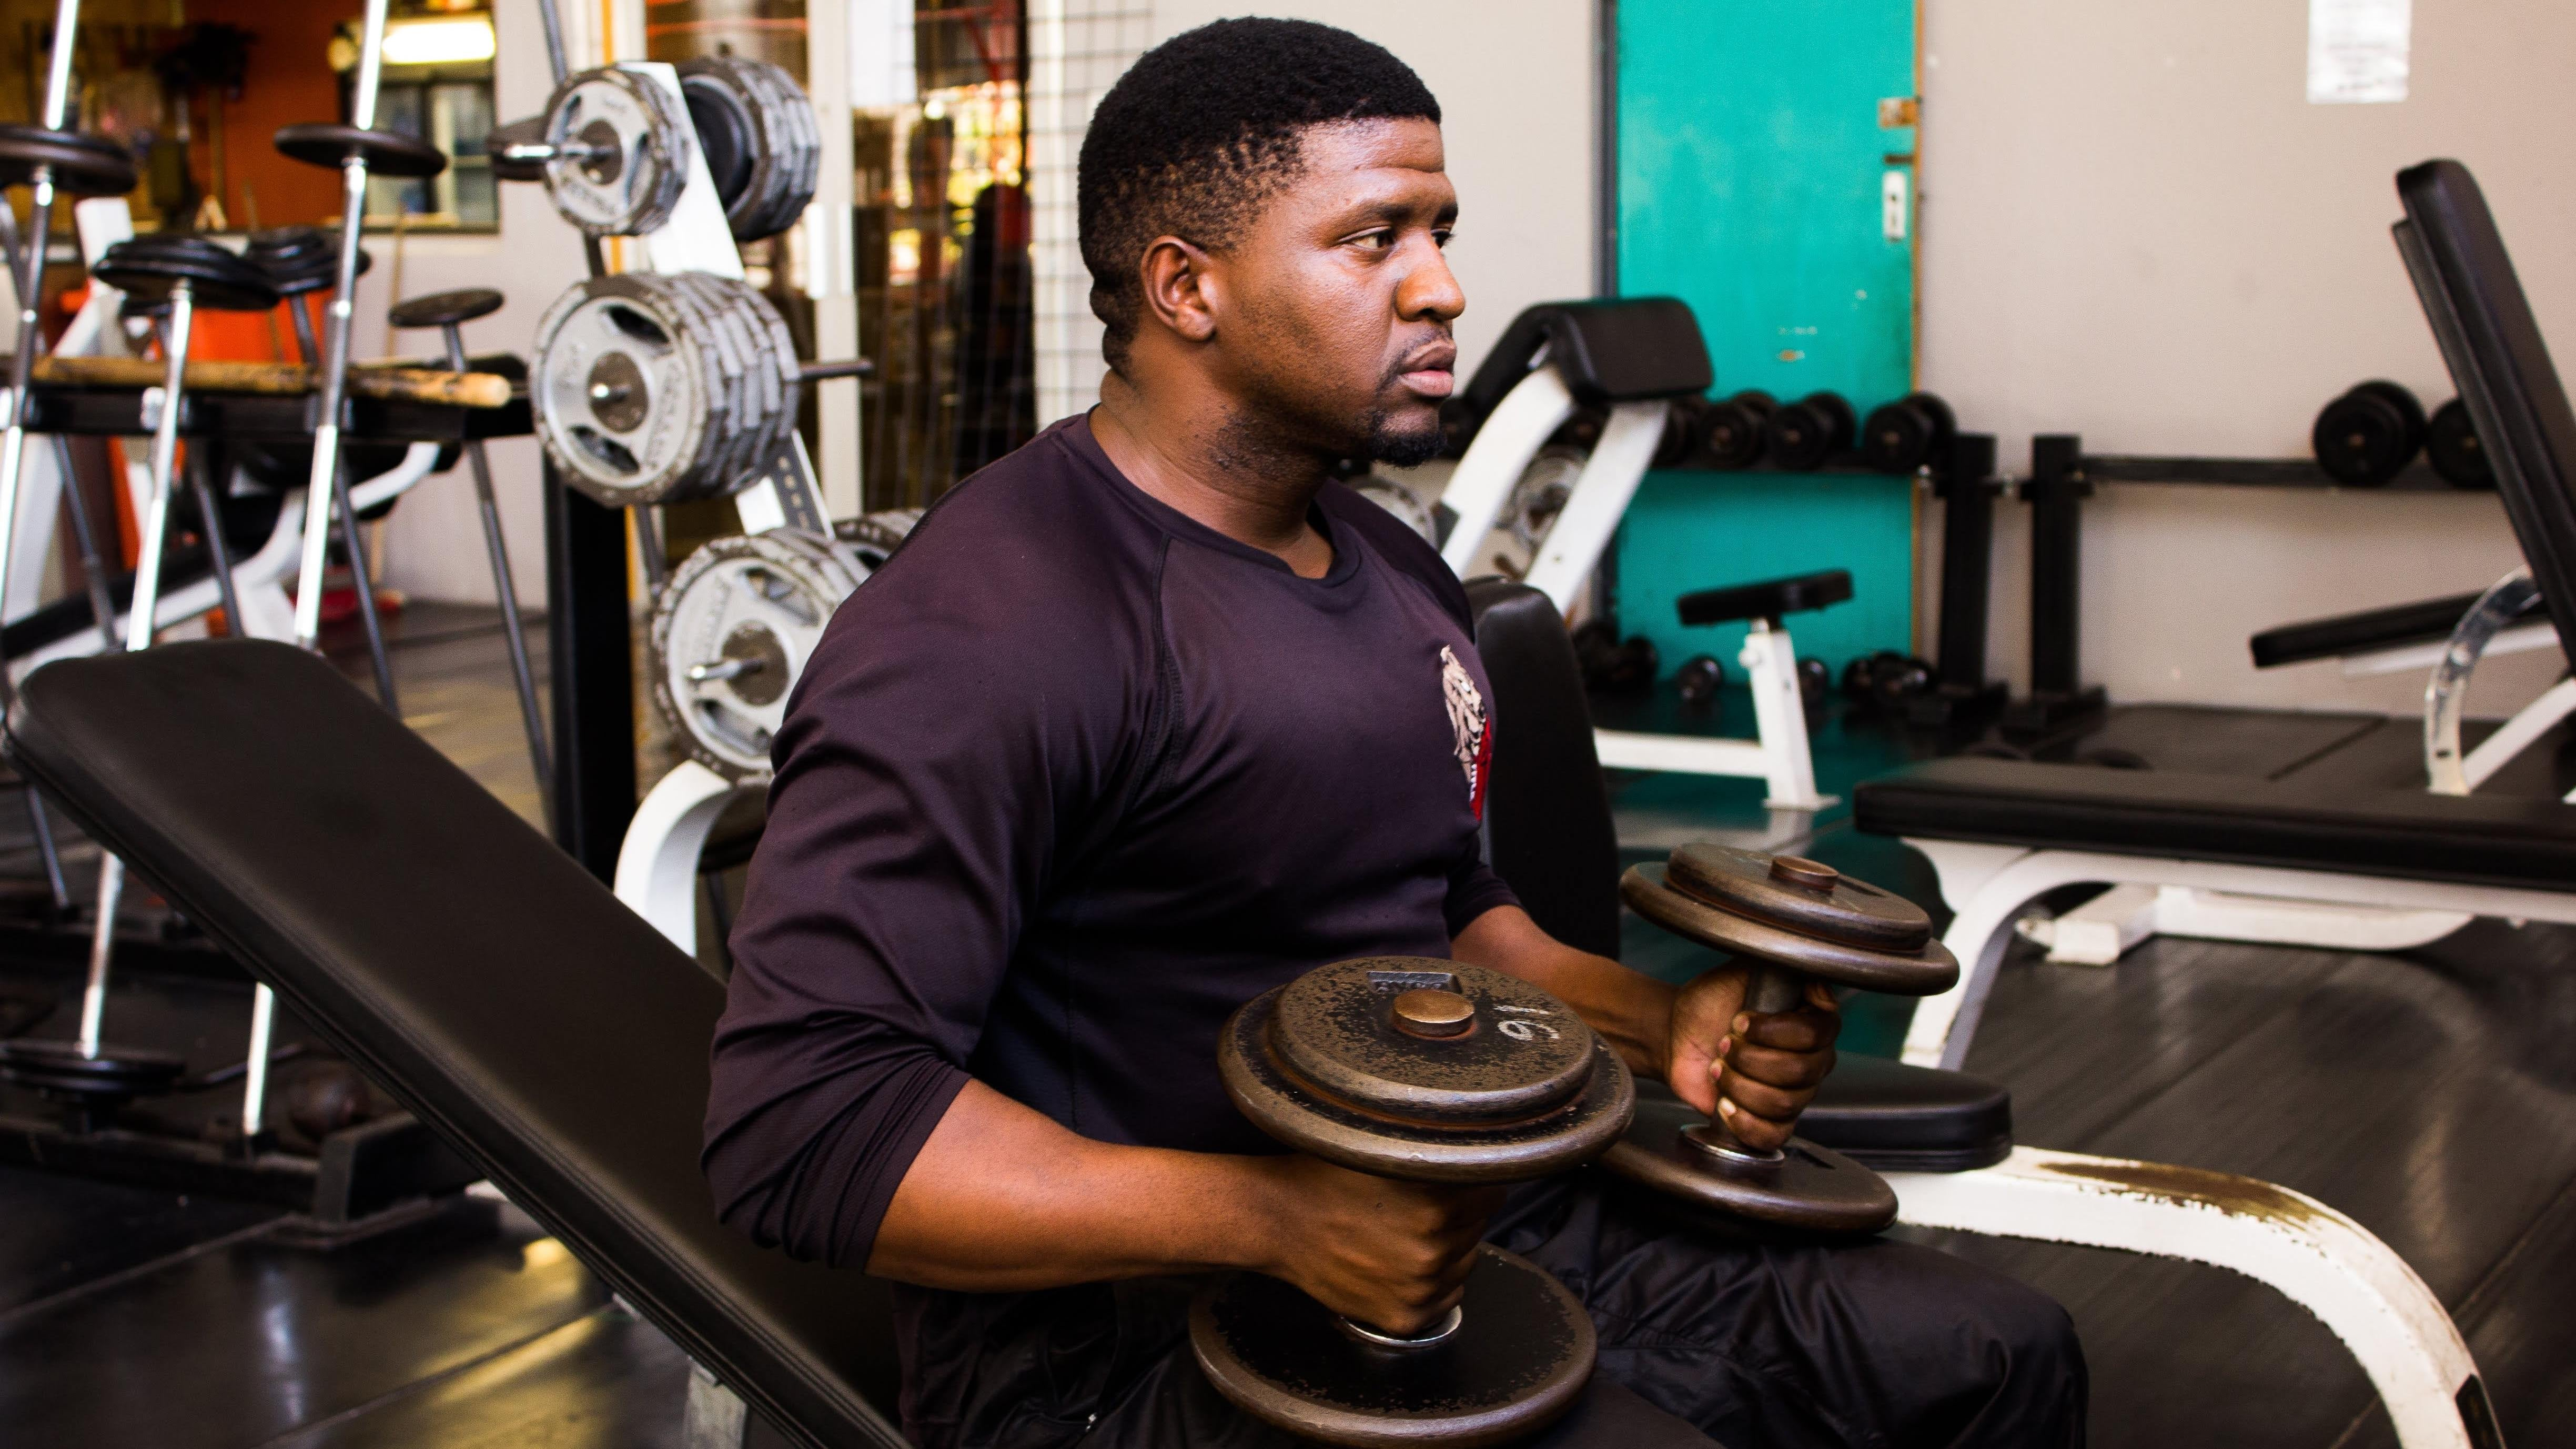 Try These Bench Press Variations